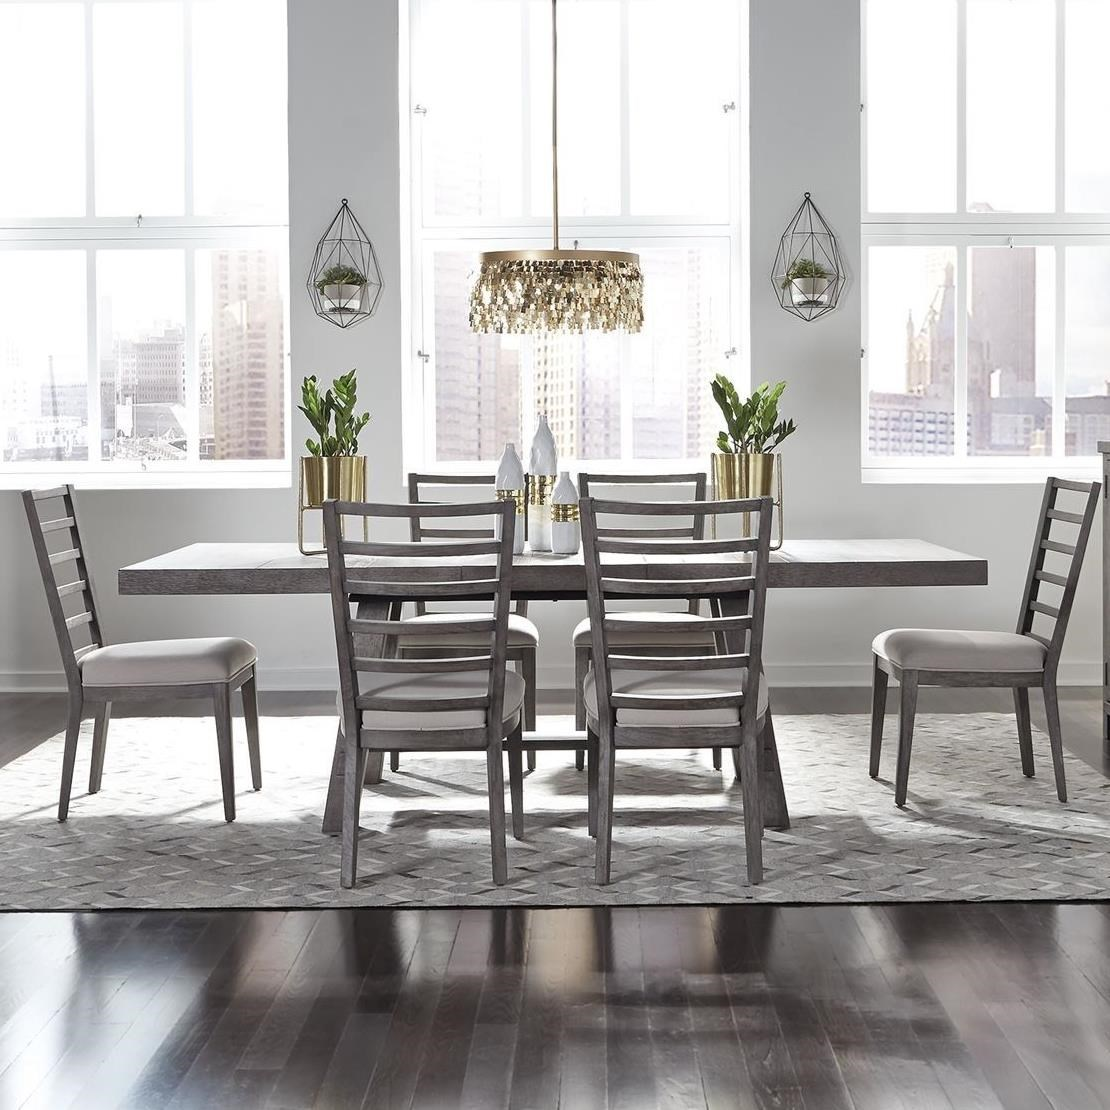 Modern Country Dining Room Table: Modern Farmhouse 7-Piece Trestle Table And Chair Set